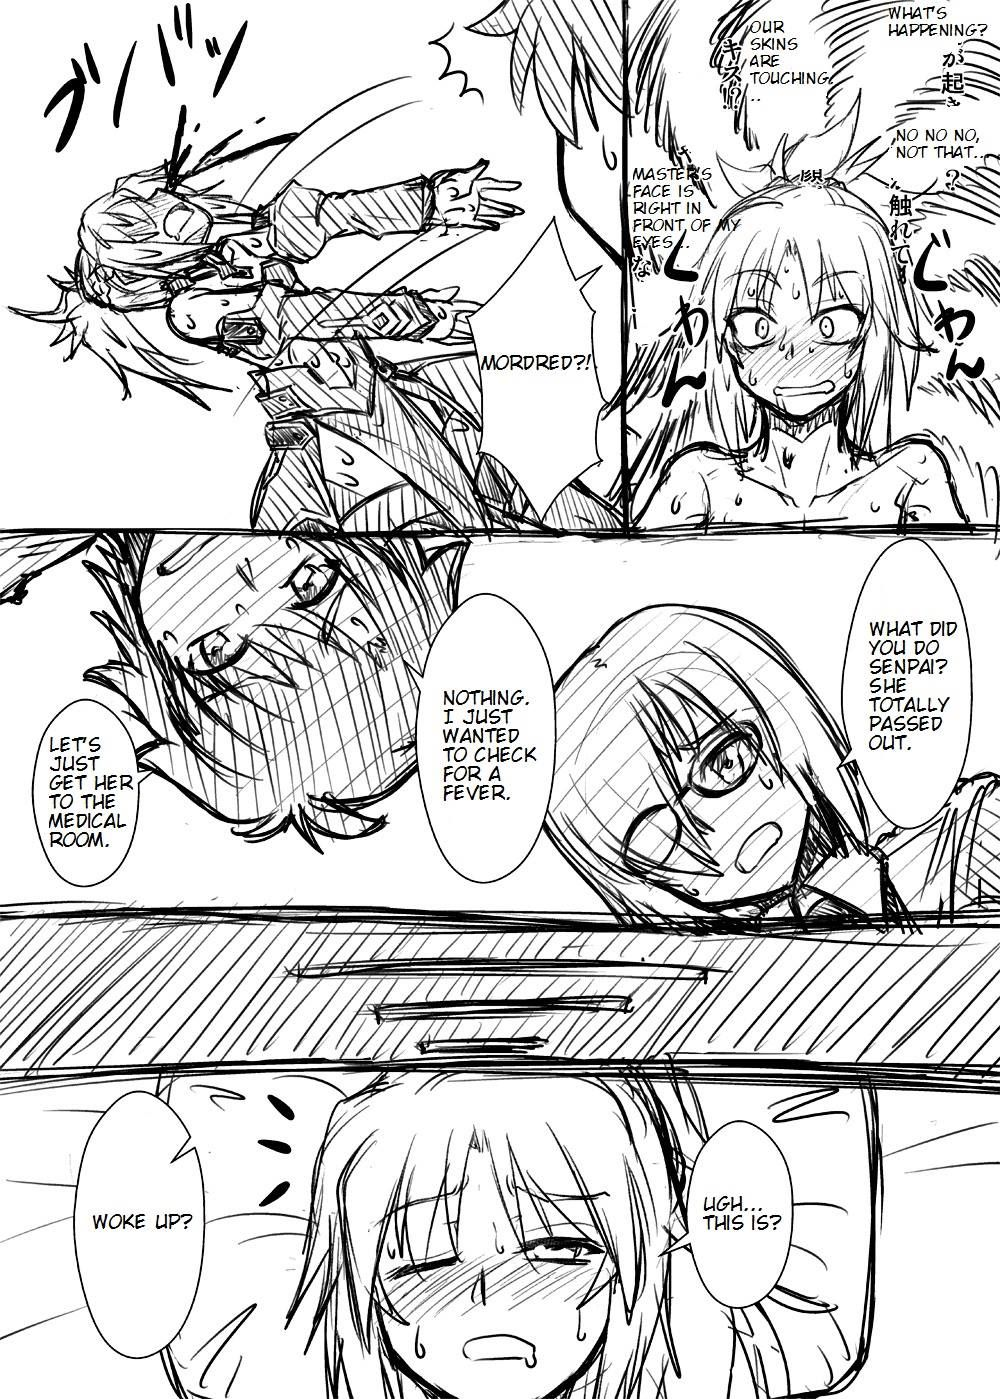 Mordred is sick